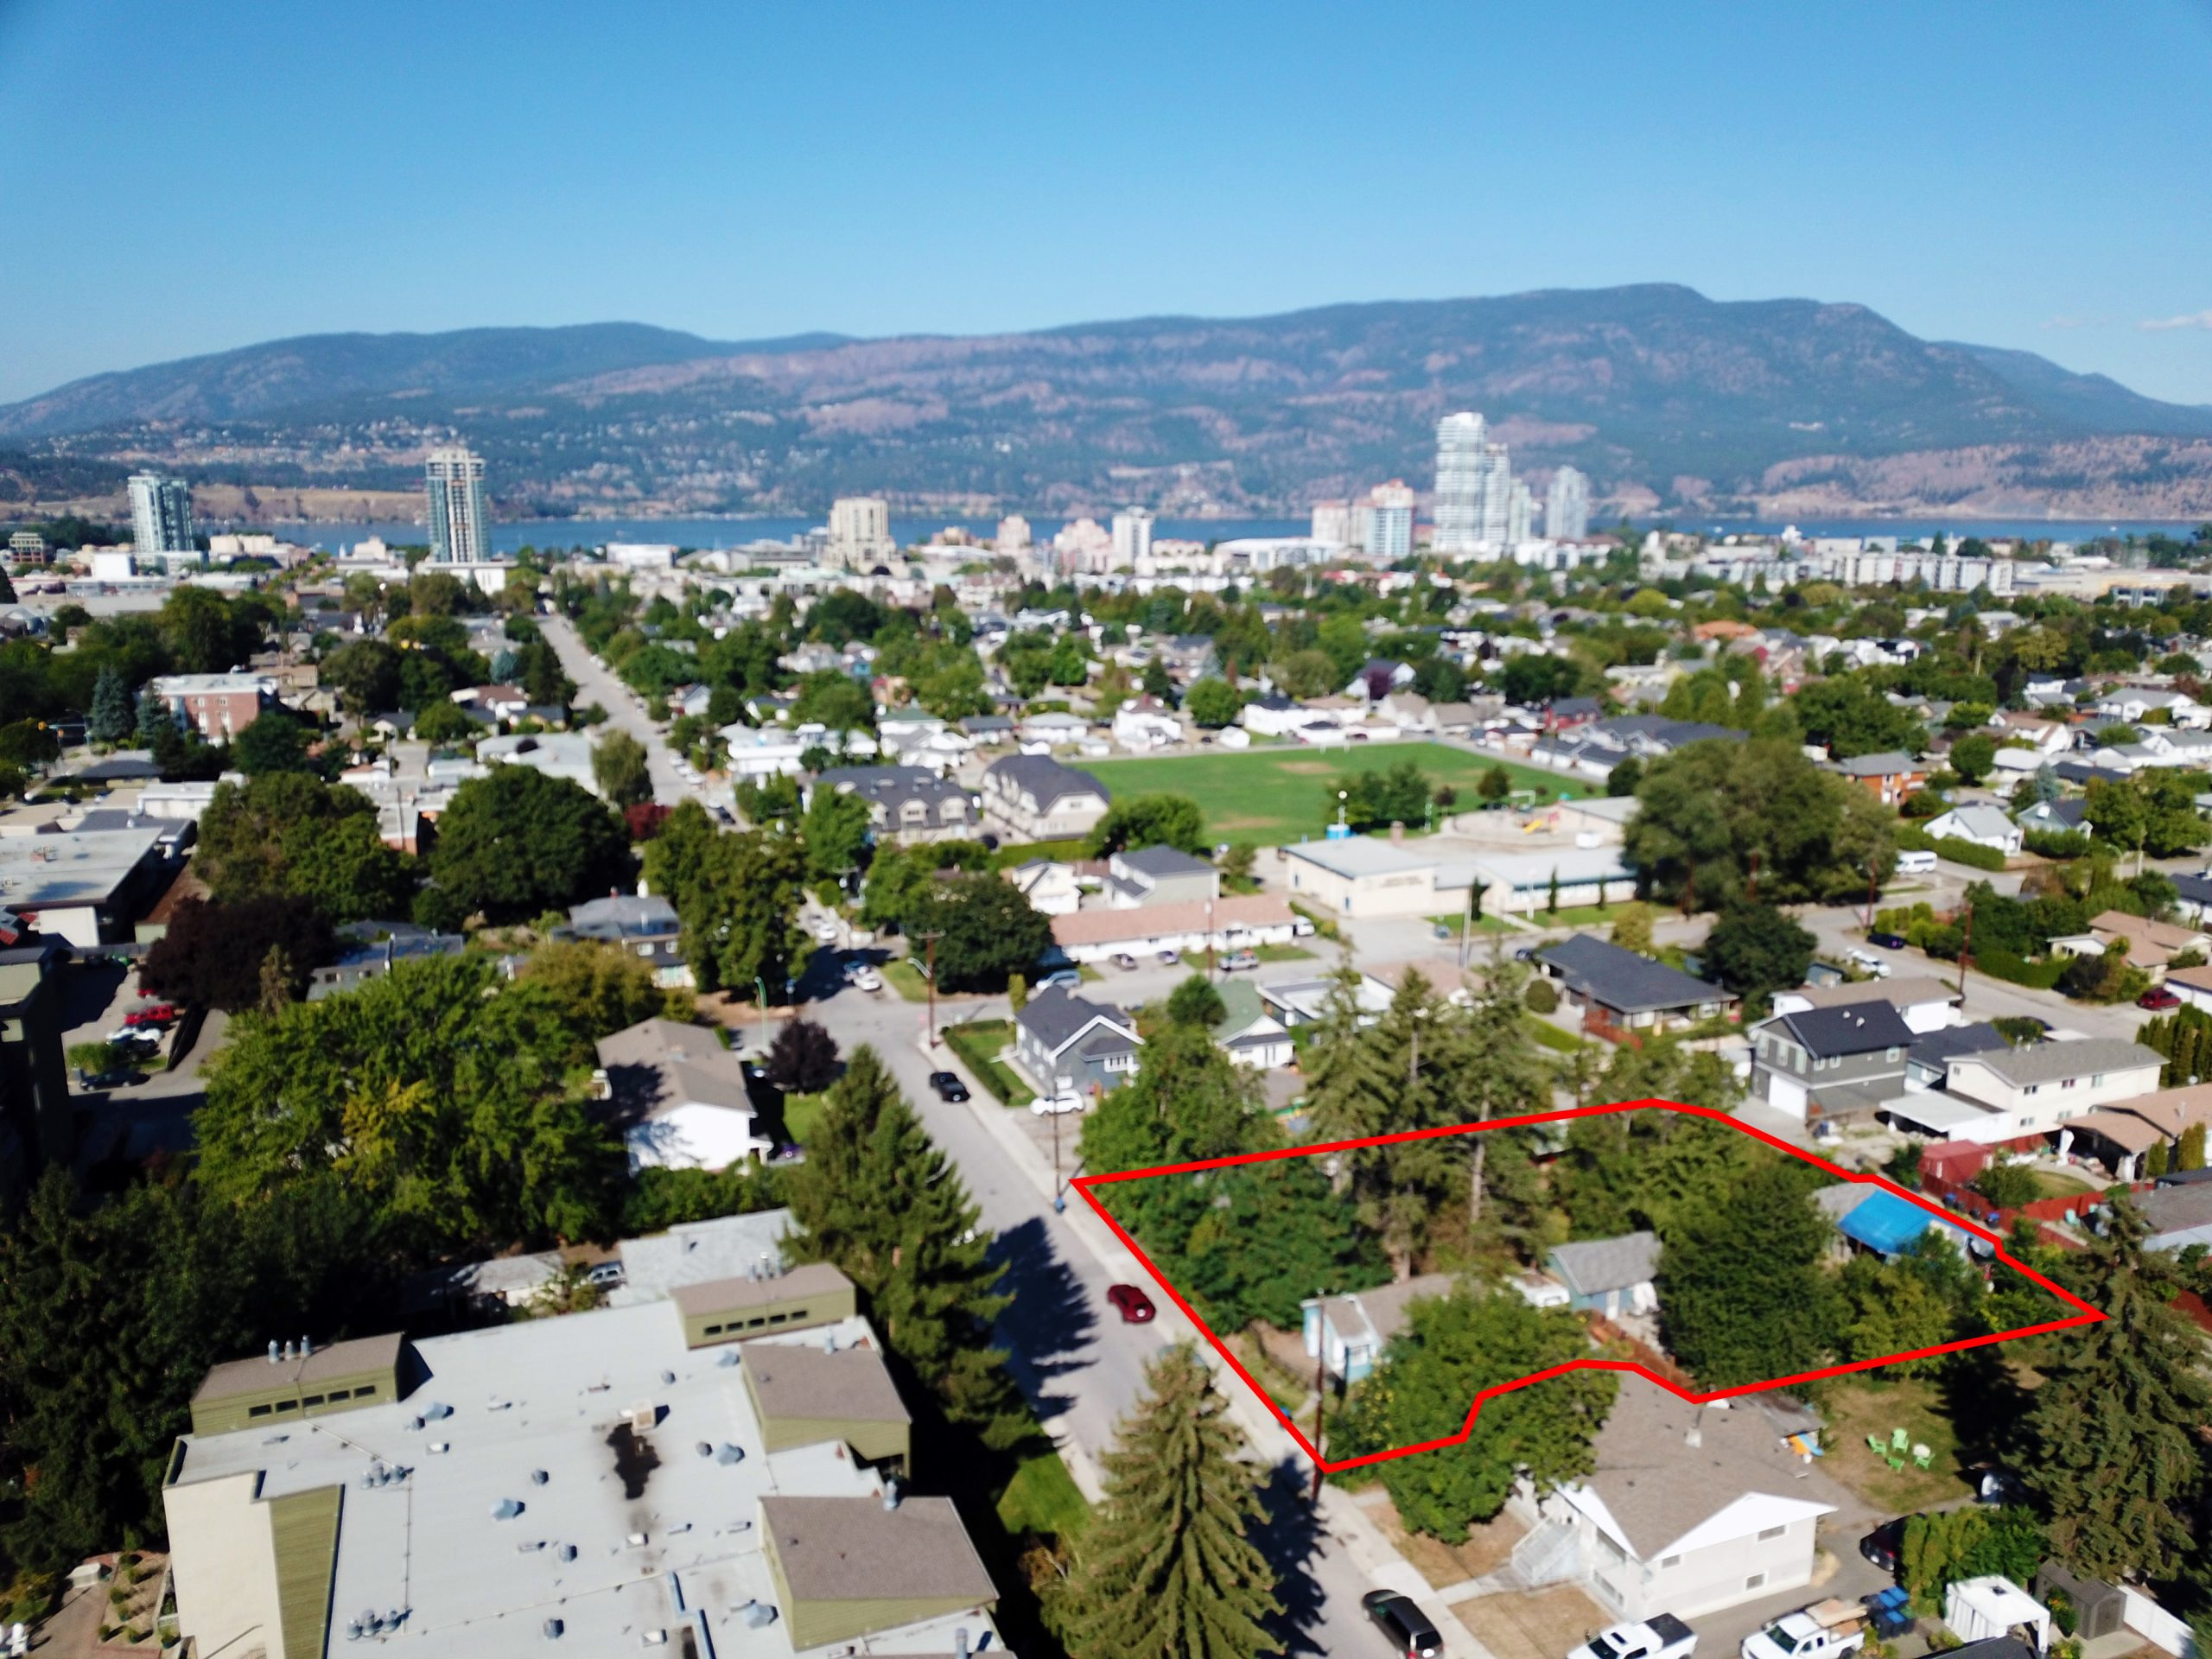 1022-1036 Lawson Avenue, Kelowna, BC - Two Lot Assembly in Central Kelowna Location